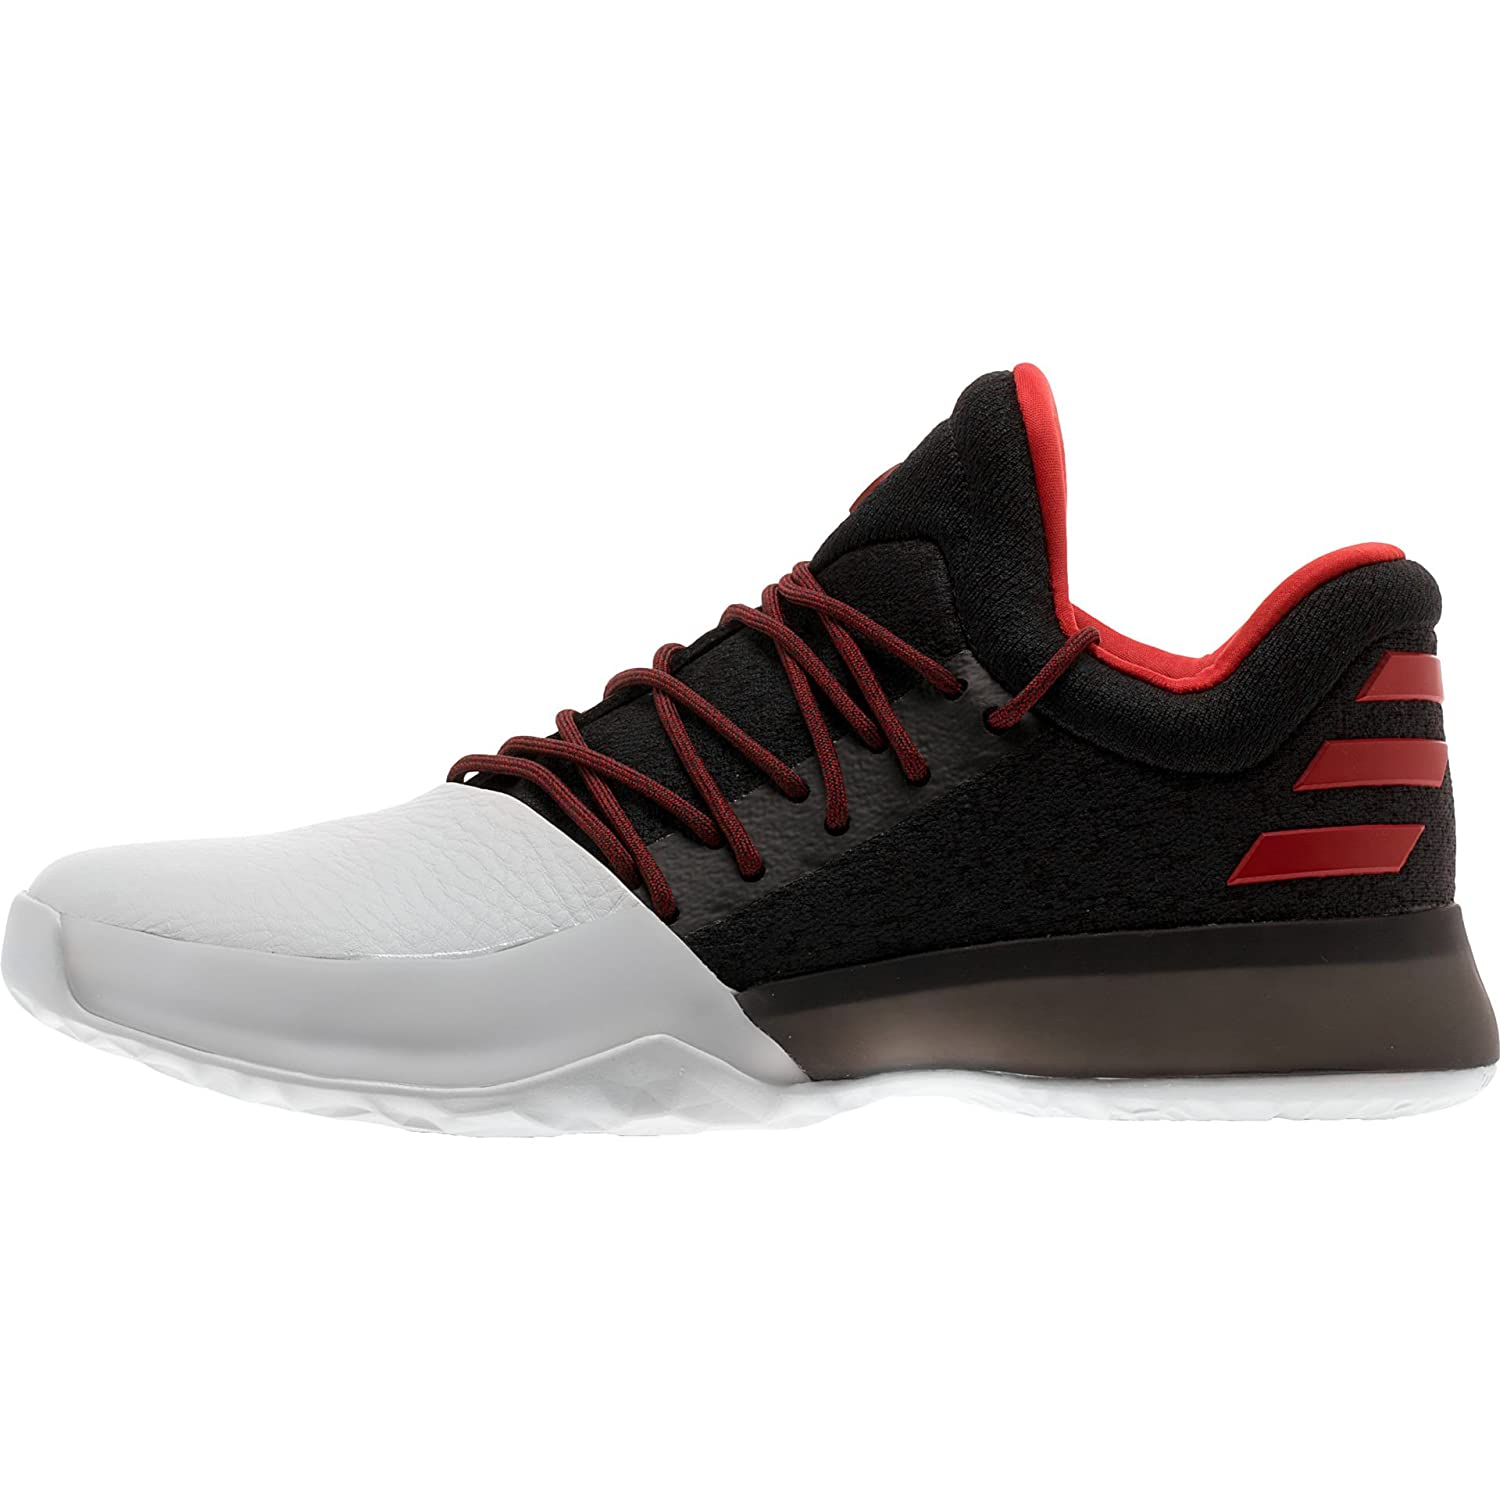 Adidas Harden Volume Vol 1 Size 14 BW0546 Boost - GOOD CONDITION - FREE SHIPPING